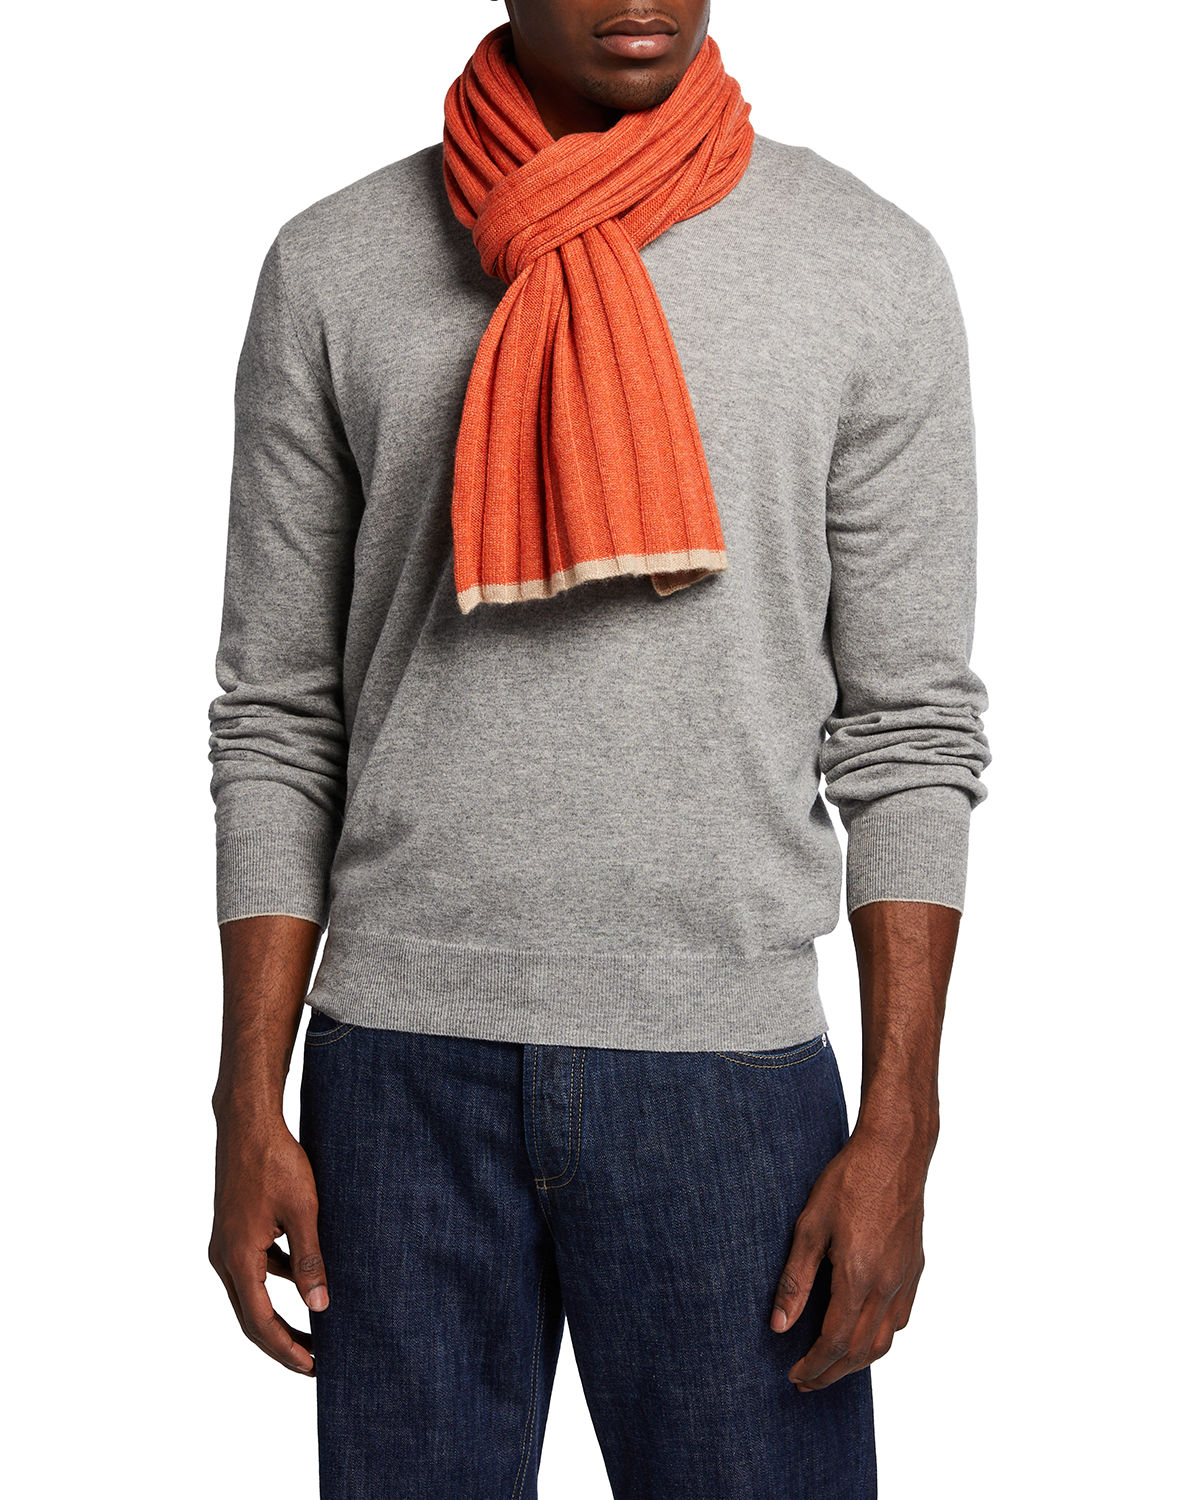 Men's Tipped Rib-Knit Cashmere Scarf